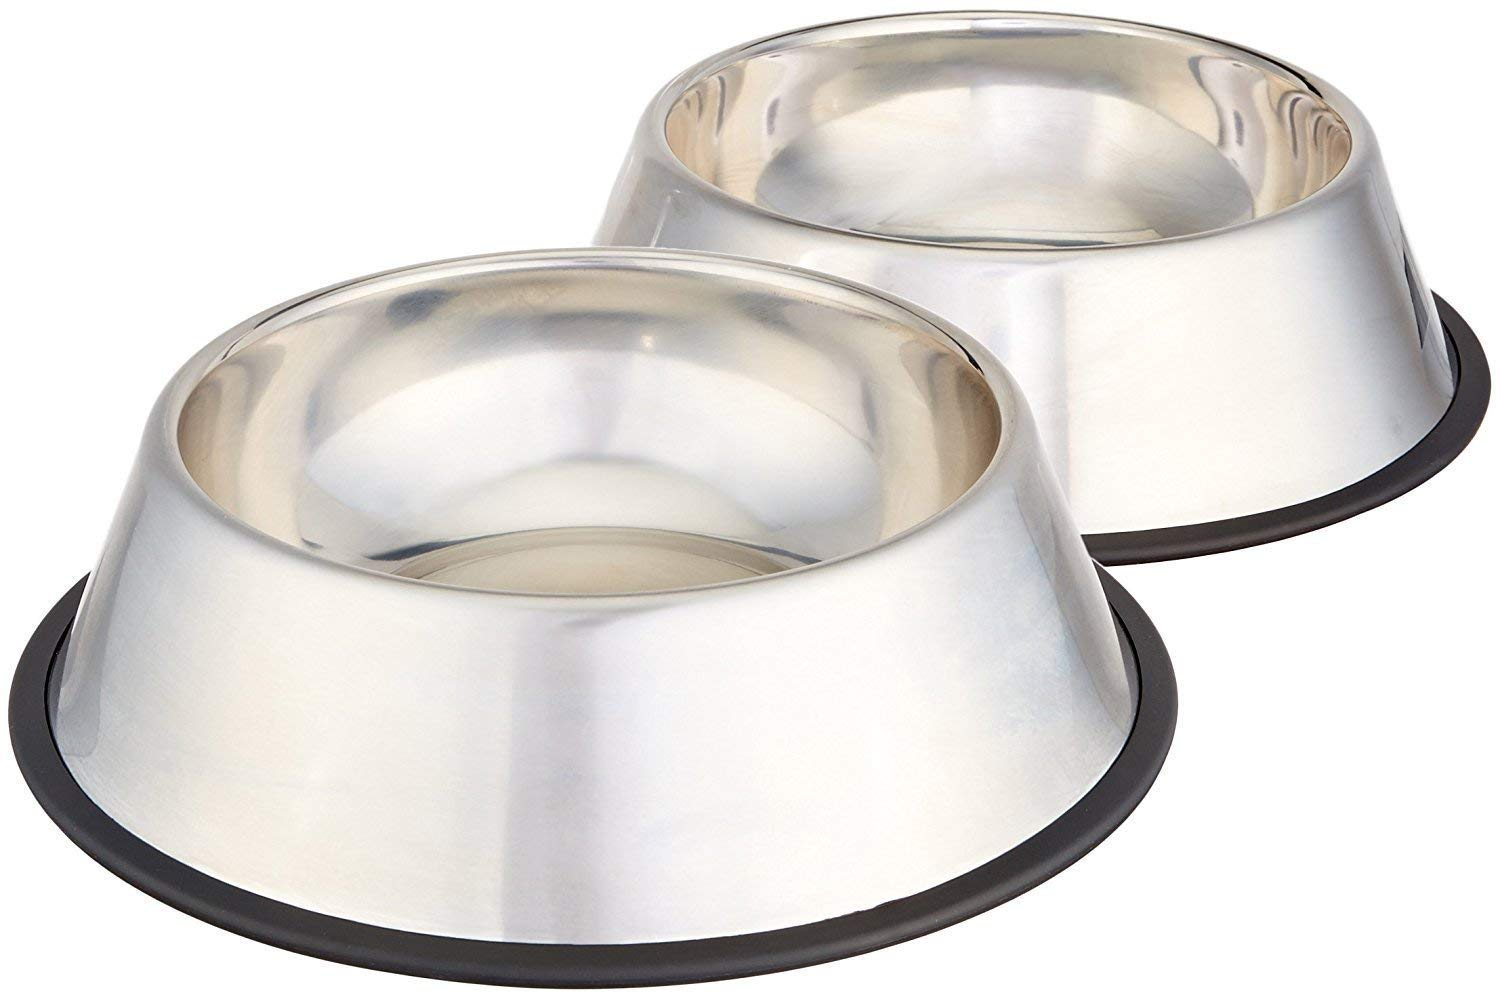 HopeShop Stainless Steel Dog Bowl  Medium, Set of 2